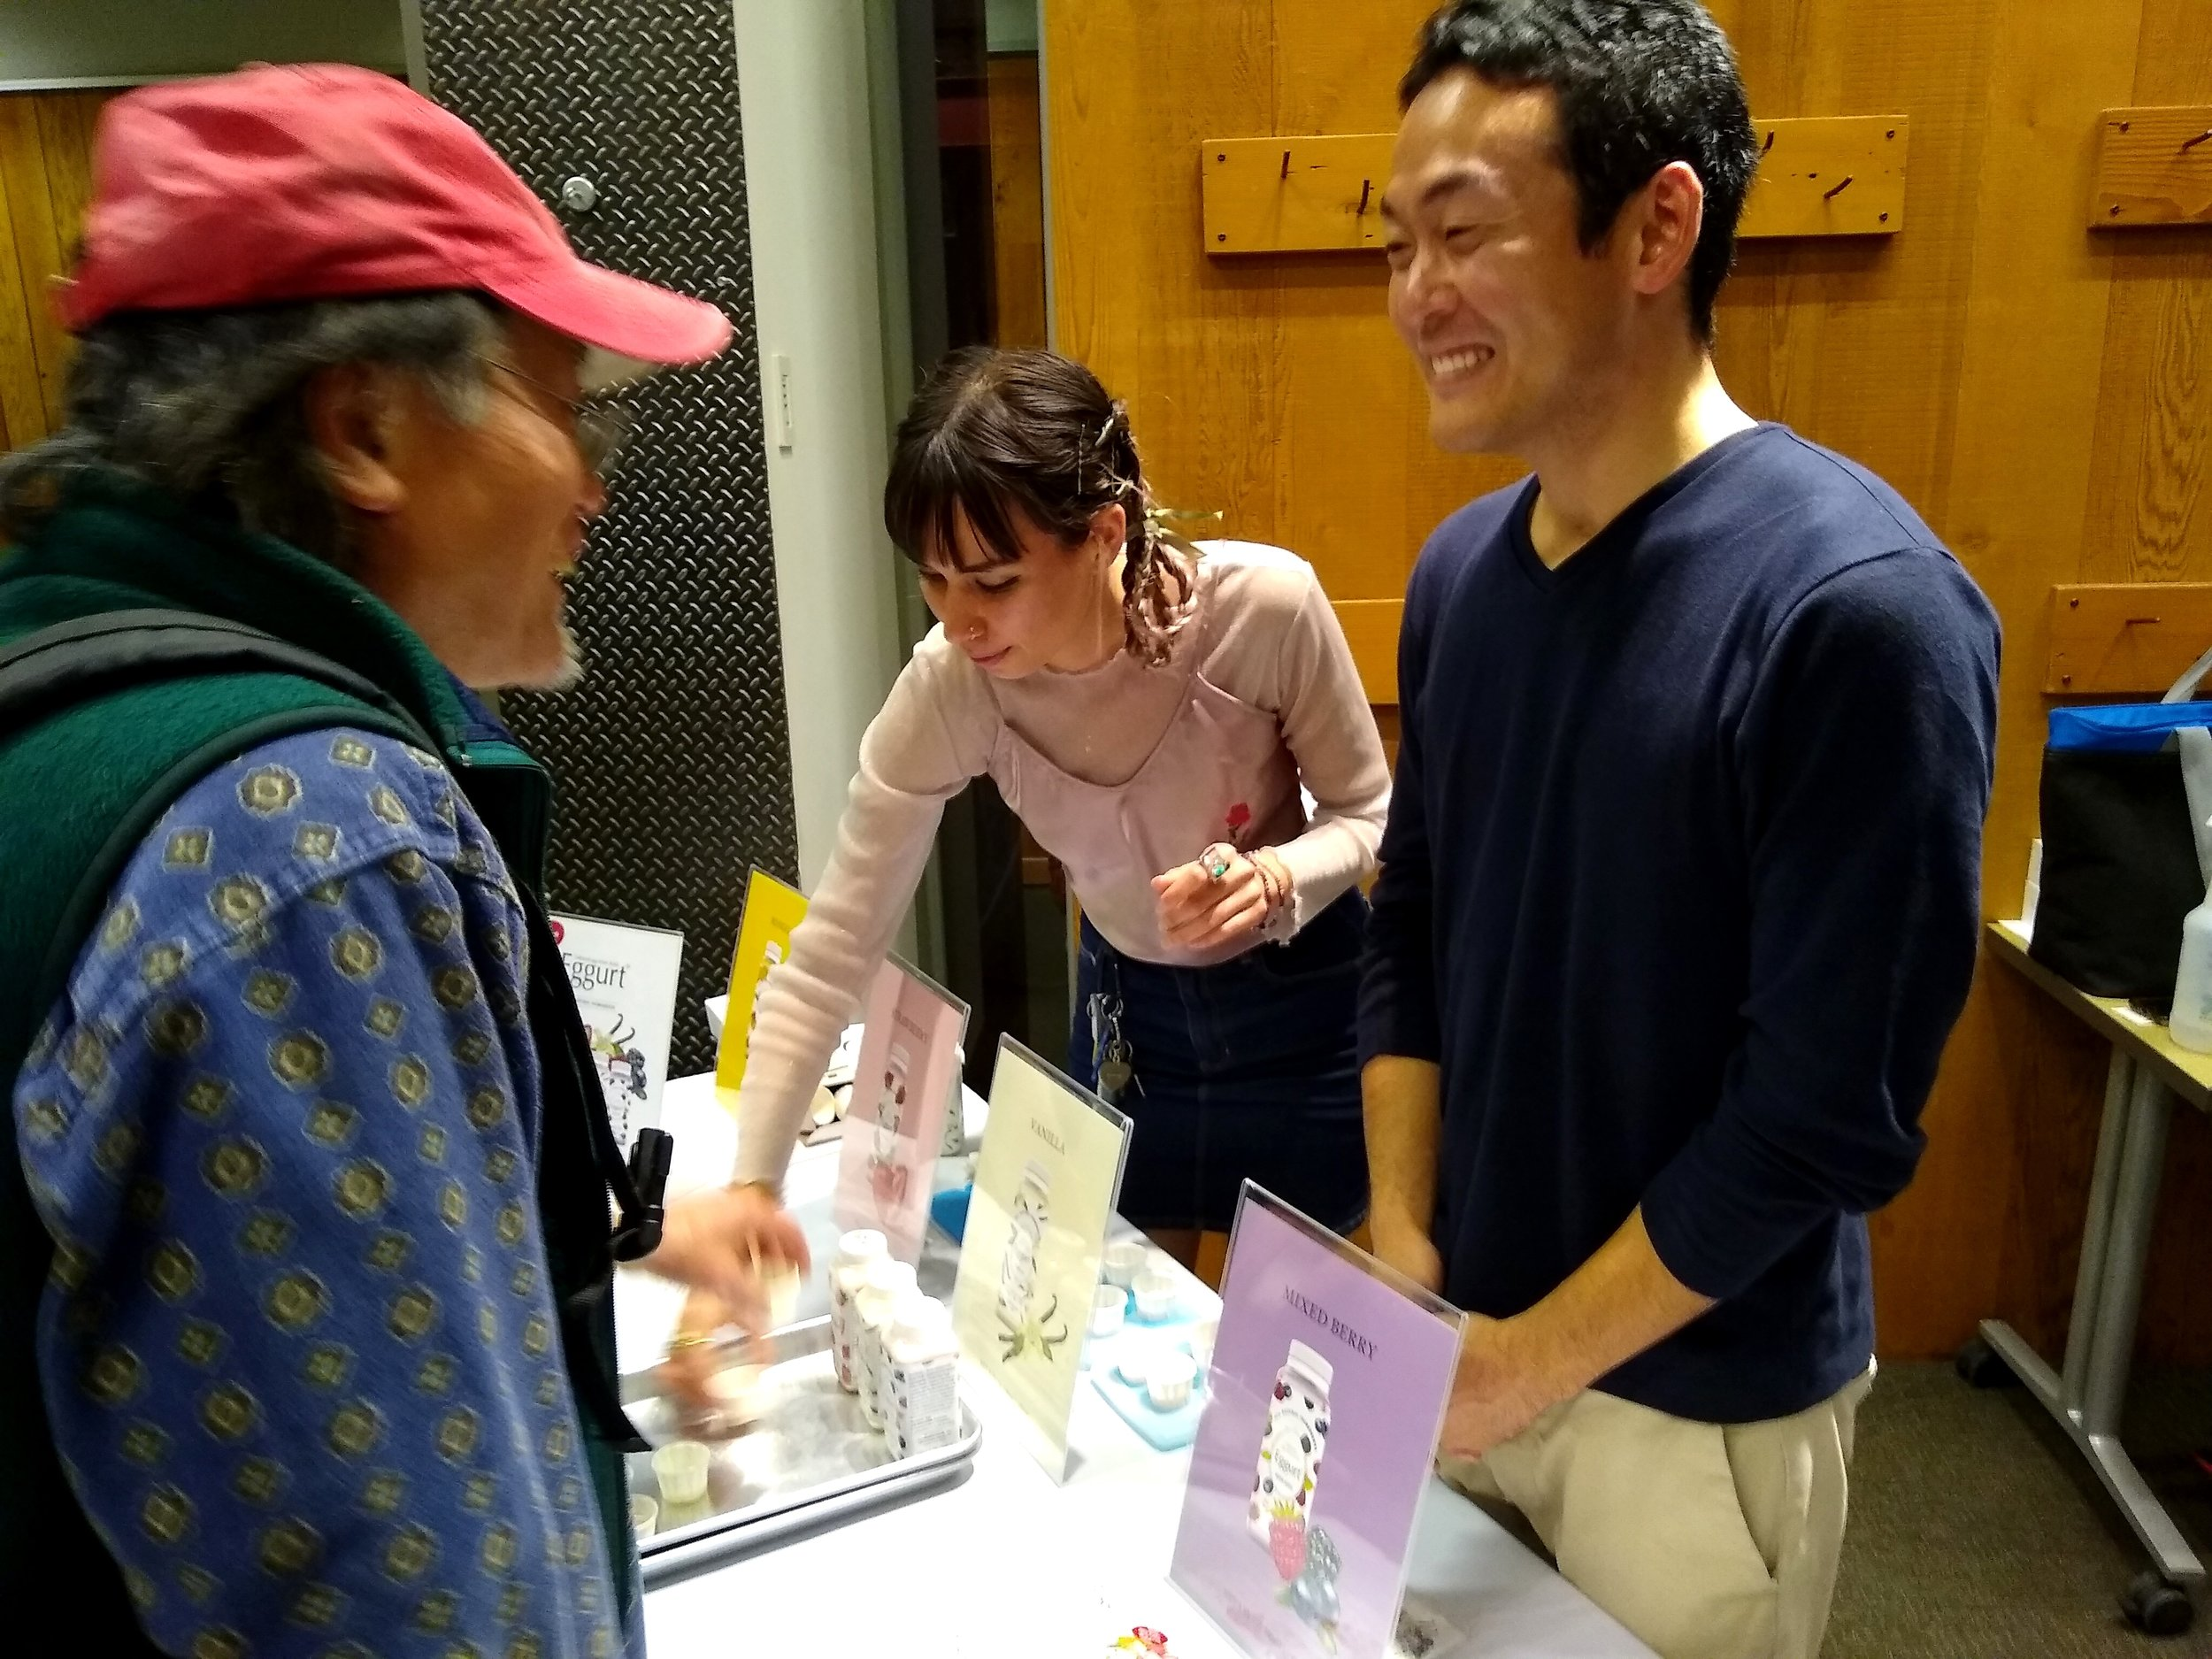 I never got to try Shun Ishida's Eggurt yogurt drink that he brought to the festival but I'm looking forward to trying it soon! It went fast. I love that when you come to our festival you get to talk to so many of the makers themselves. A rare treat.